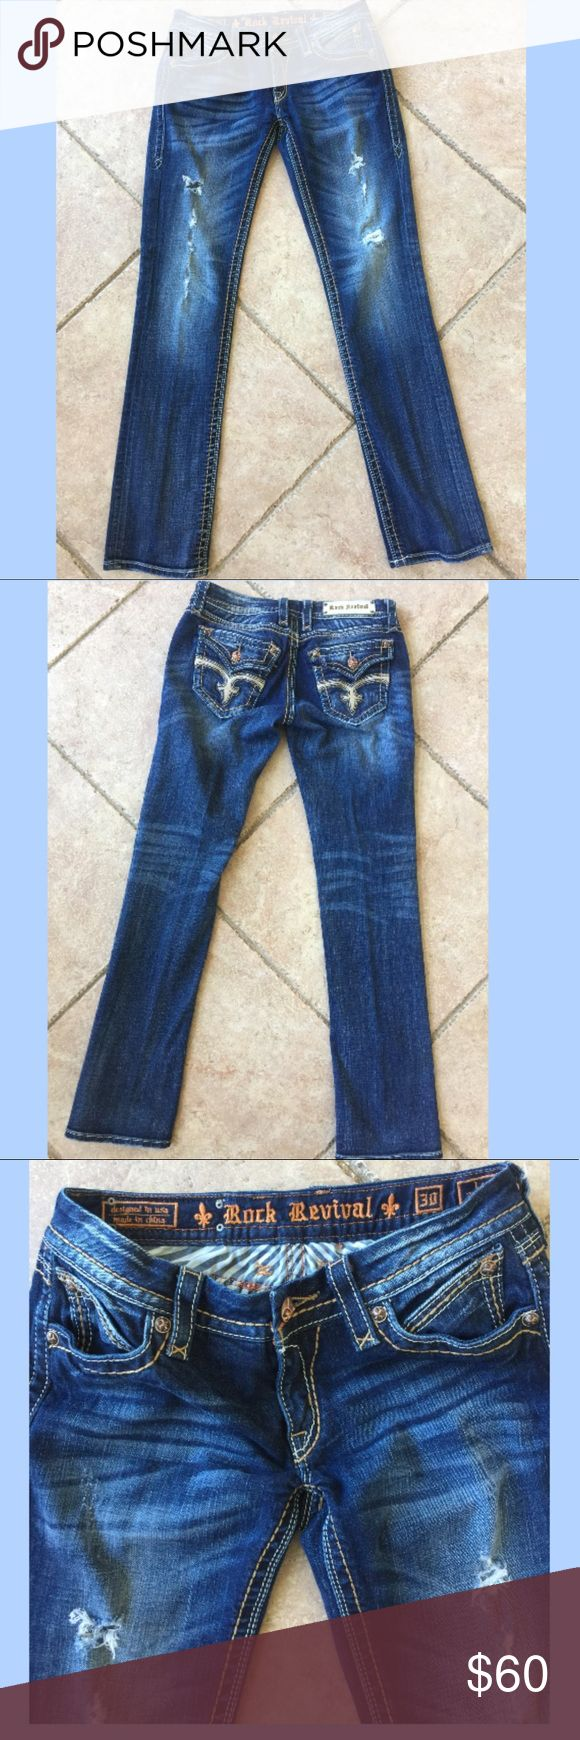 "Beautiful Rock revival women's  jeans size 30 Wash - T4 34"" Inseam 8"" Rise 98% cotton 2% elastane 16""in the knee and 16""at the leg opening Whiskering along front pocket and backs of knees Fading along front of pant and back pockets Distressing throughout pant Leather detail along back pockets Back flap pockets with button closure Rock Revival Pants Straight Leg"